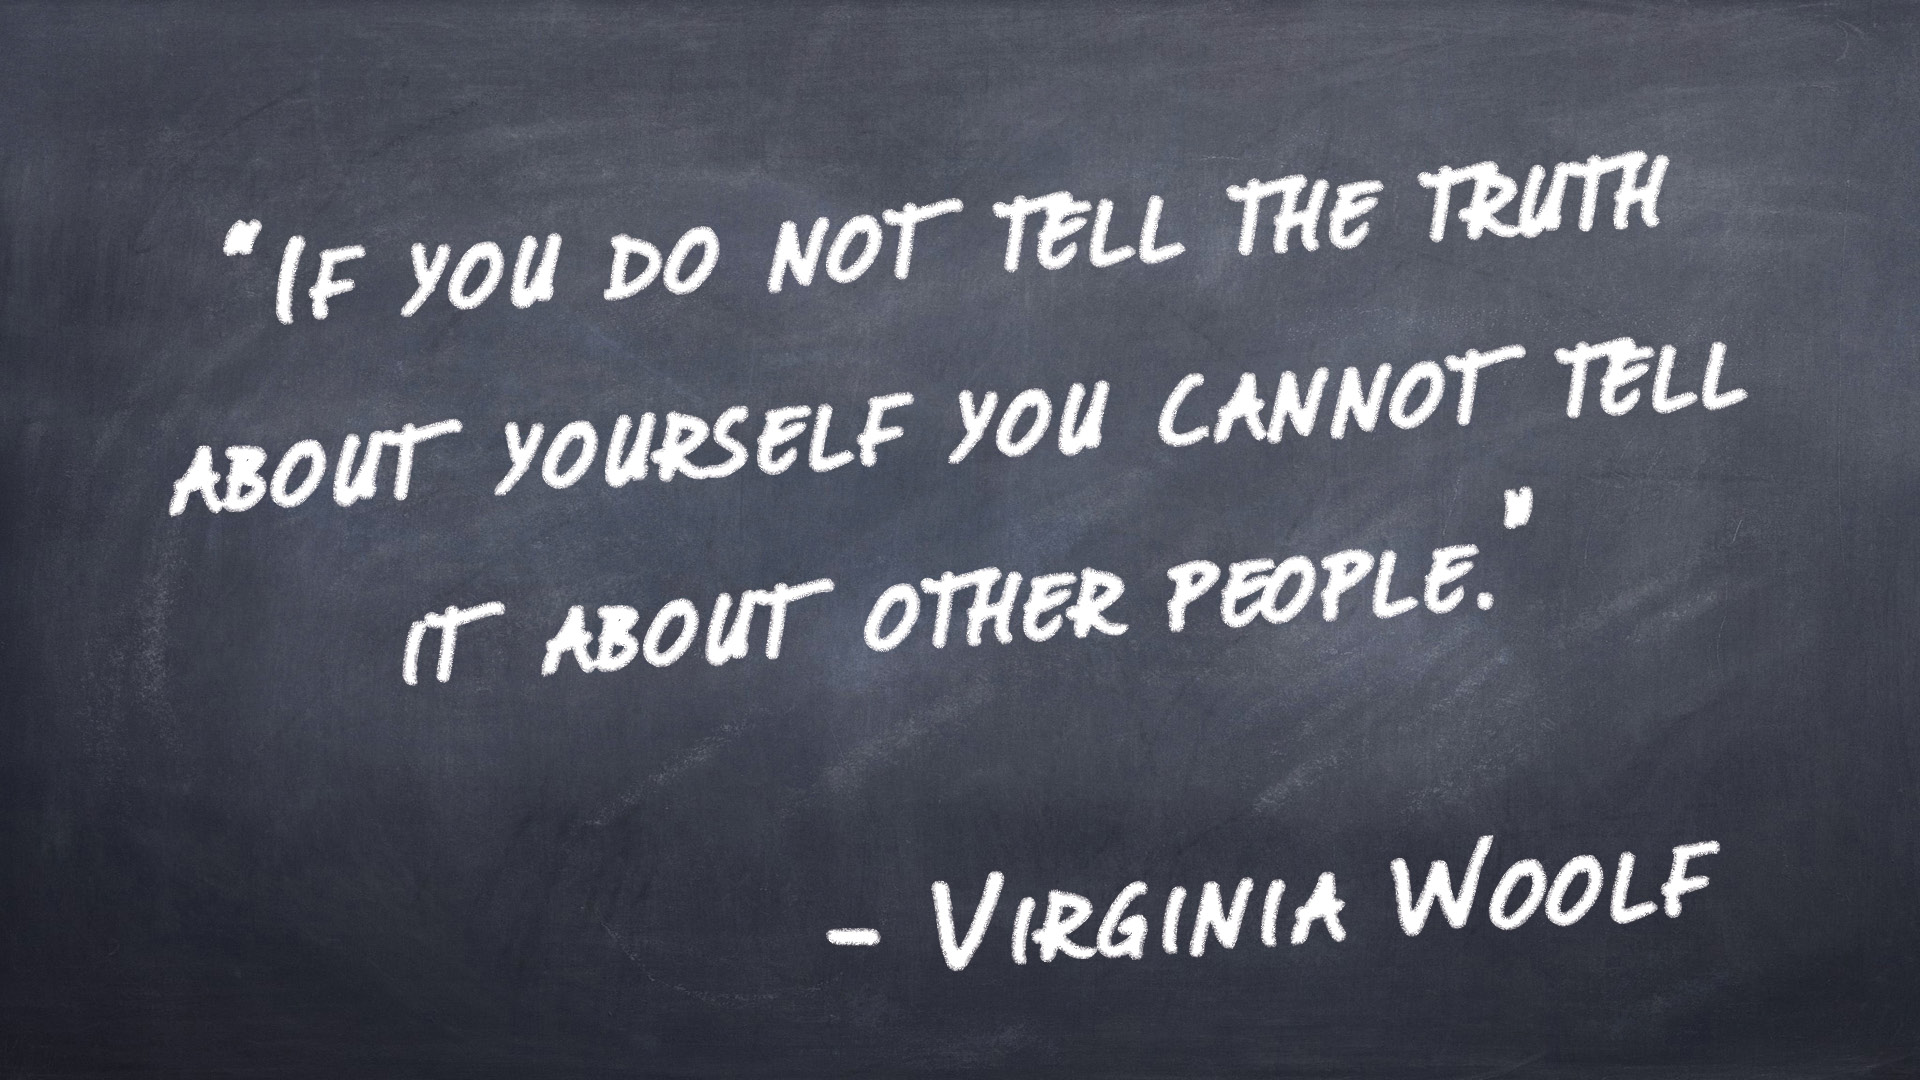 What to tell people about yourself